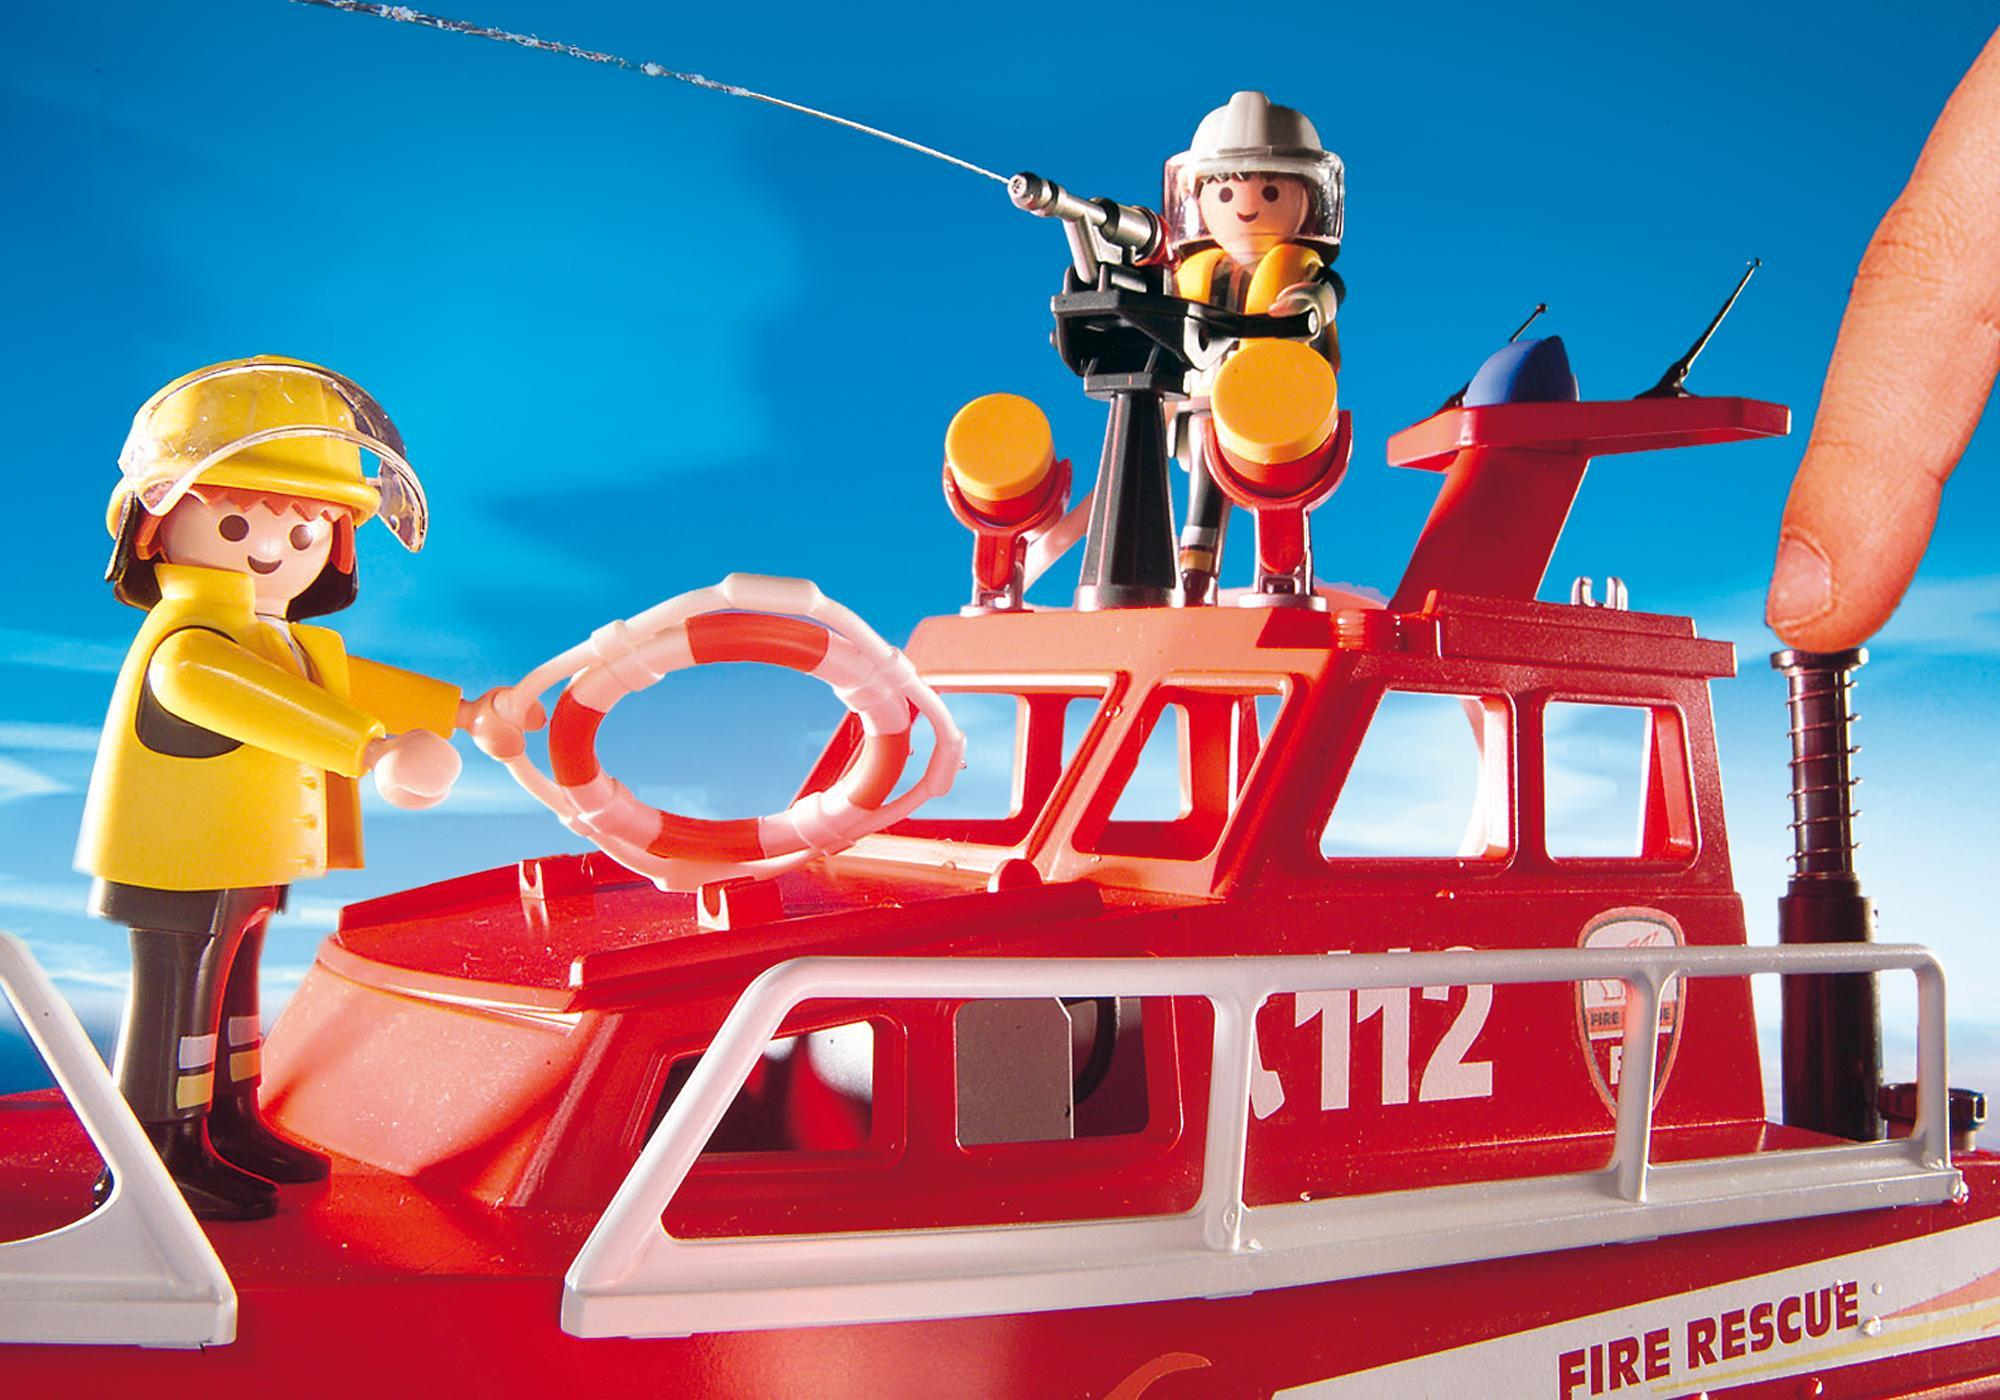 http://media.playmobil.com/i/playmobil/3128_product_extra2